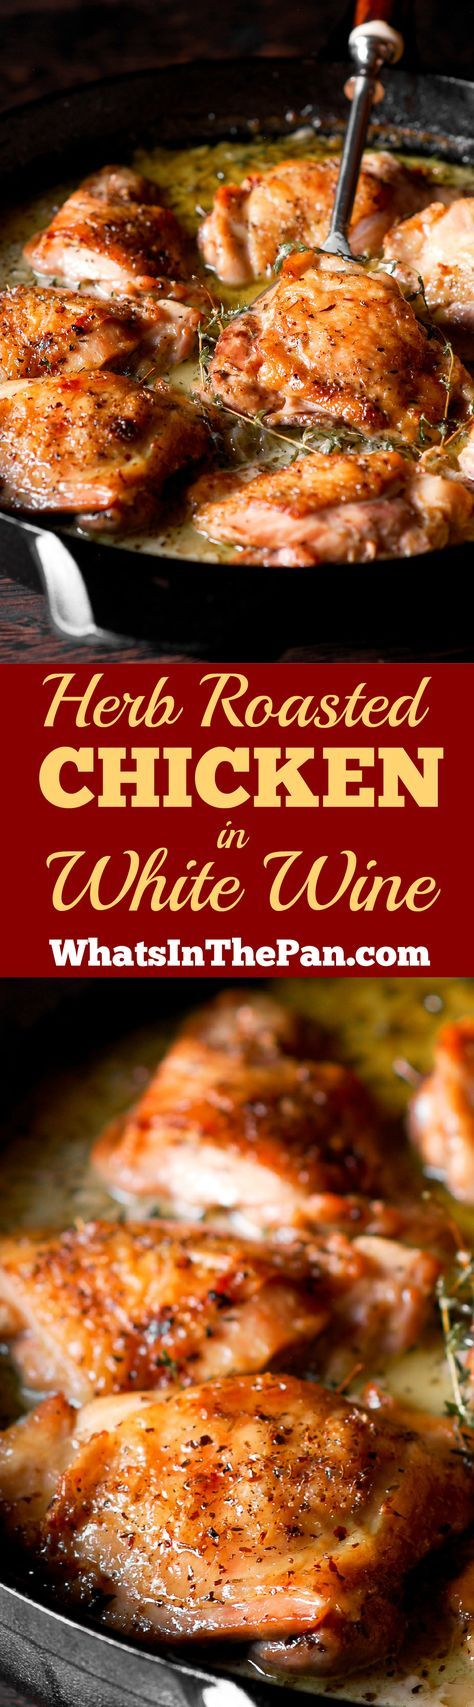 Herb Roasted Chicken Thighs In Creamy White Wine Sauce Chickenthighs Dinner Herb Roasted Chicken Chicken Recipes Poultry Recipes